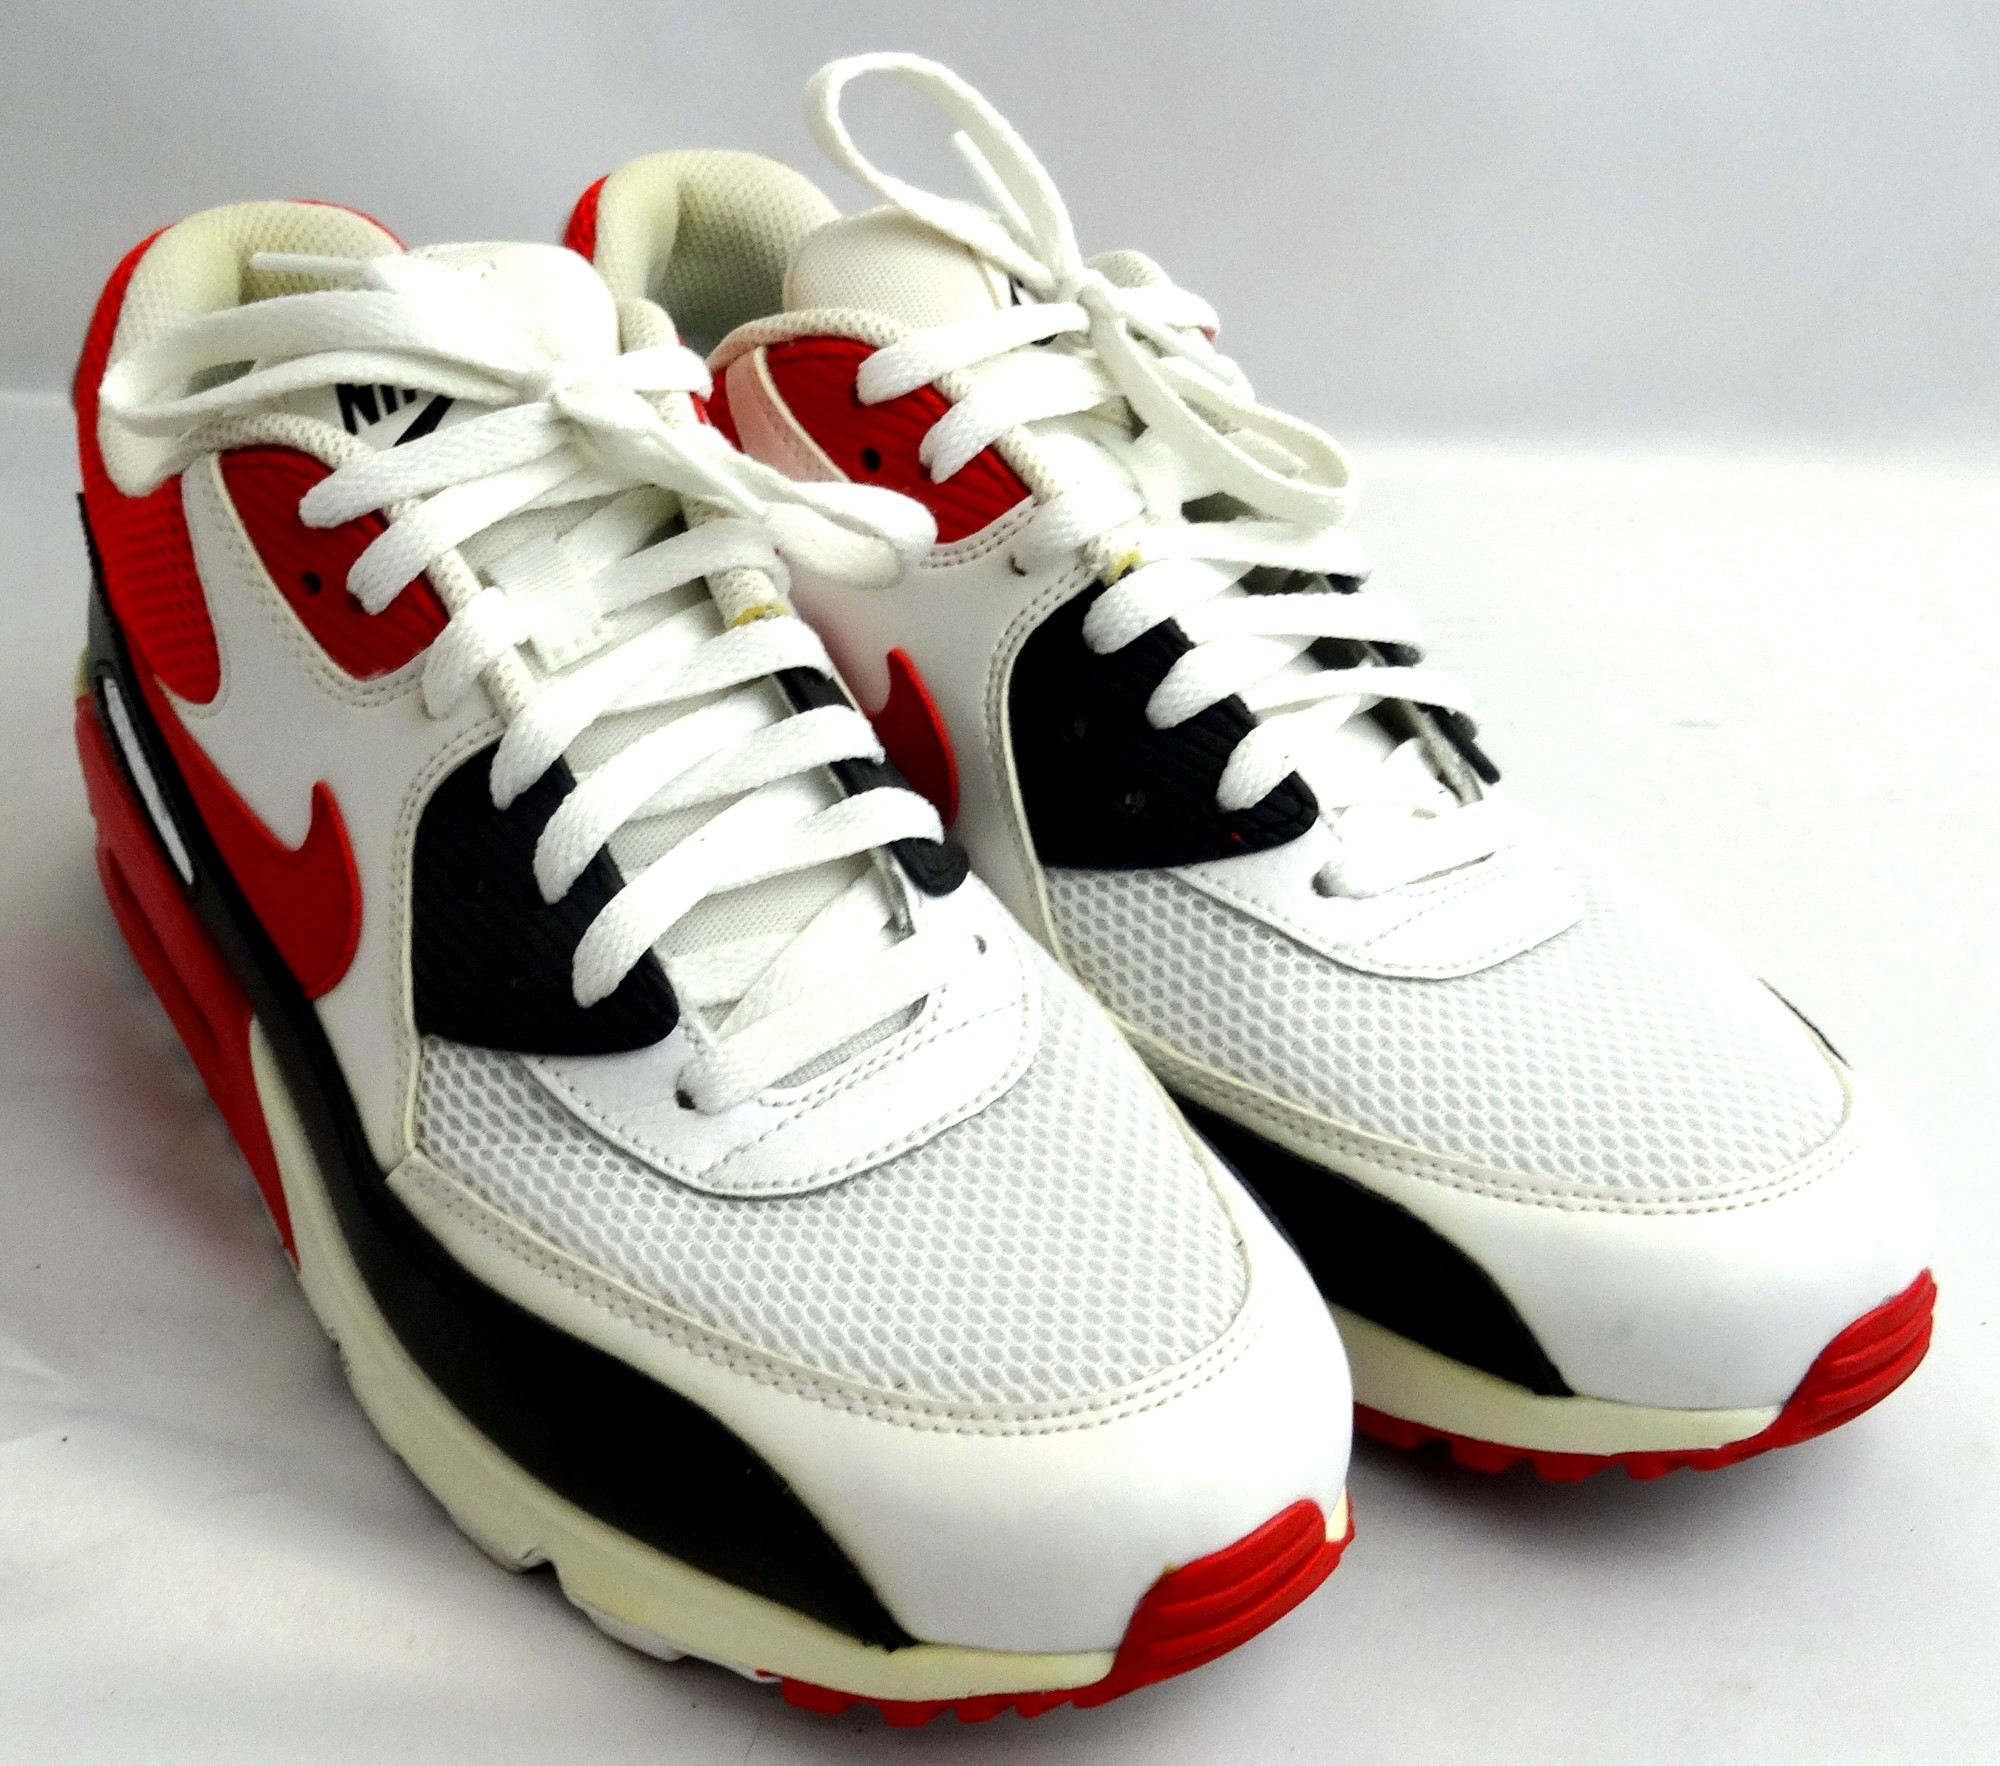 5b1ca0db633 Men s Nike Air Max 90 WHITE